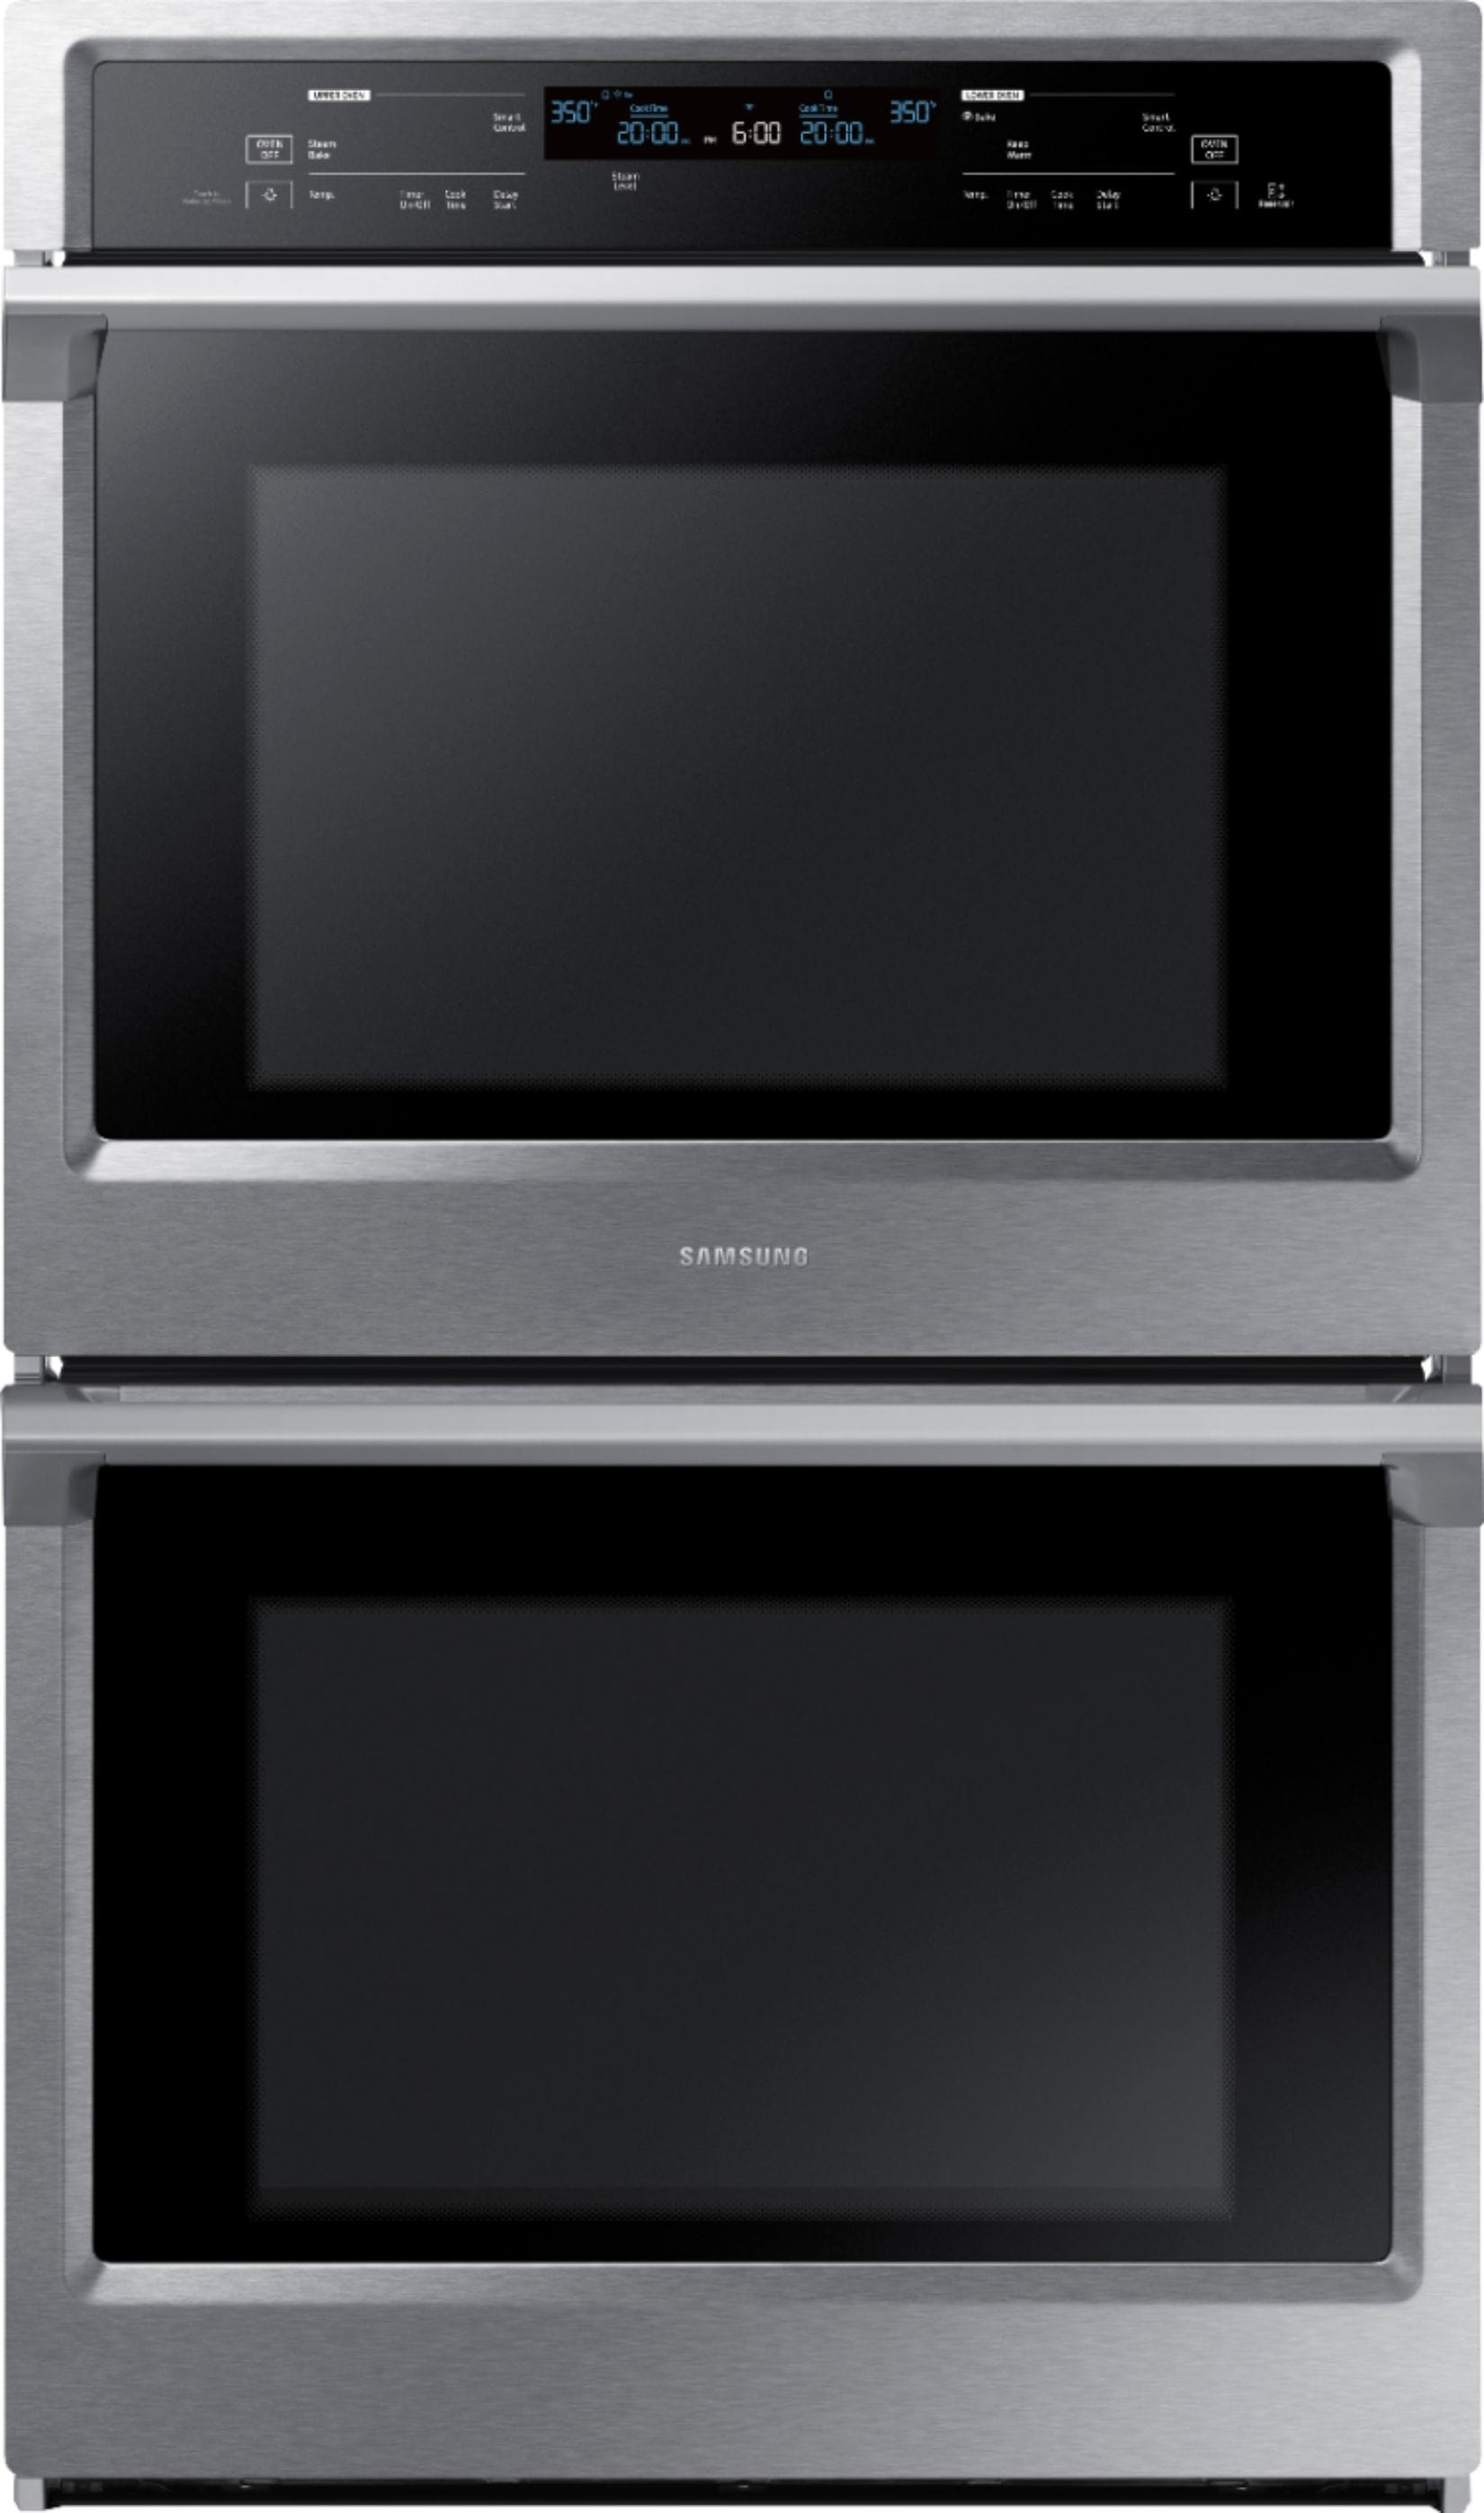 Samsung - 30 Double Wall Oven with Steam Cook and WiFi